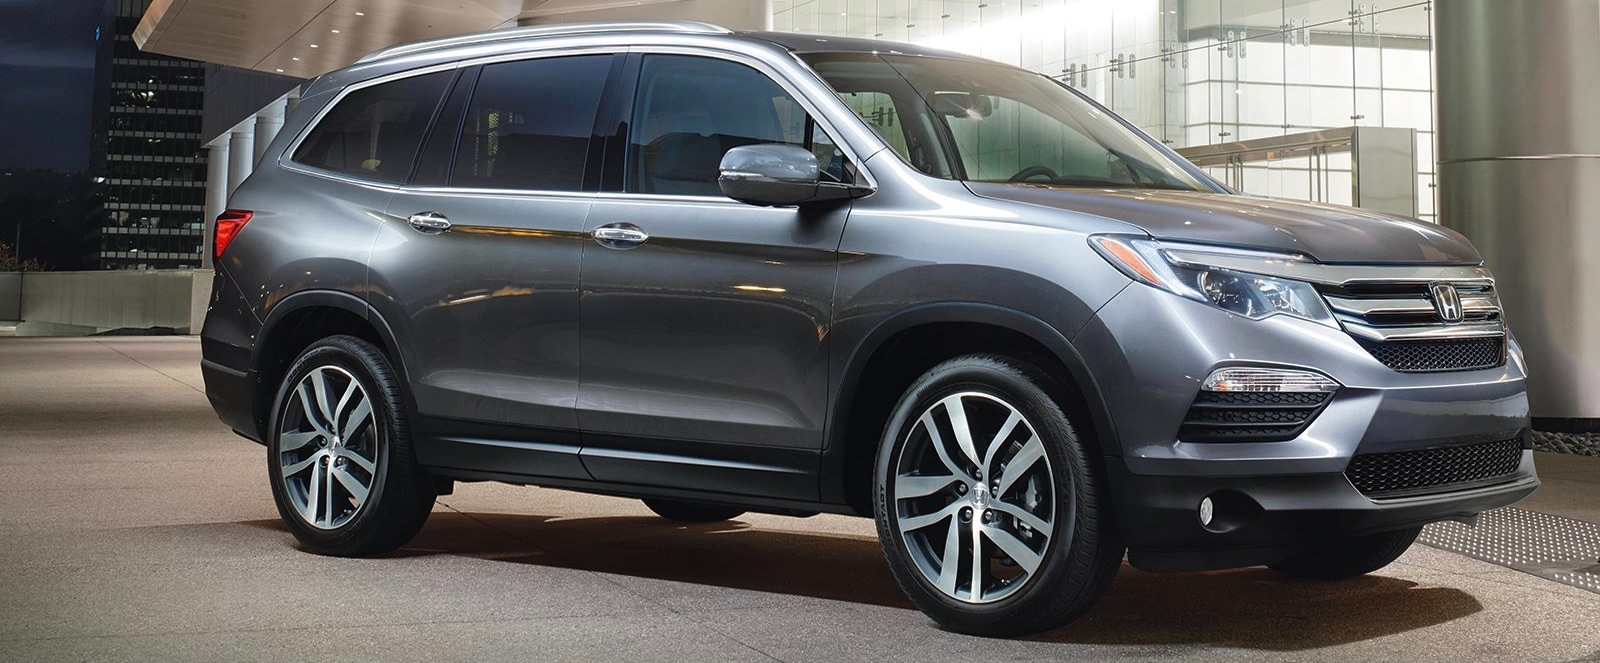 Honda Pilot 2018 >> 2018 Honda Pilot Stockton Honda Shop New Used Vehicles Online